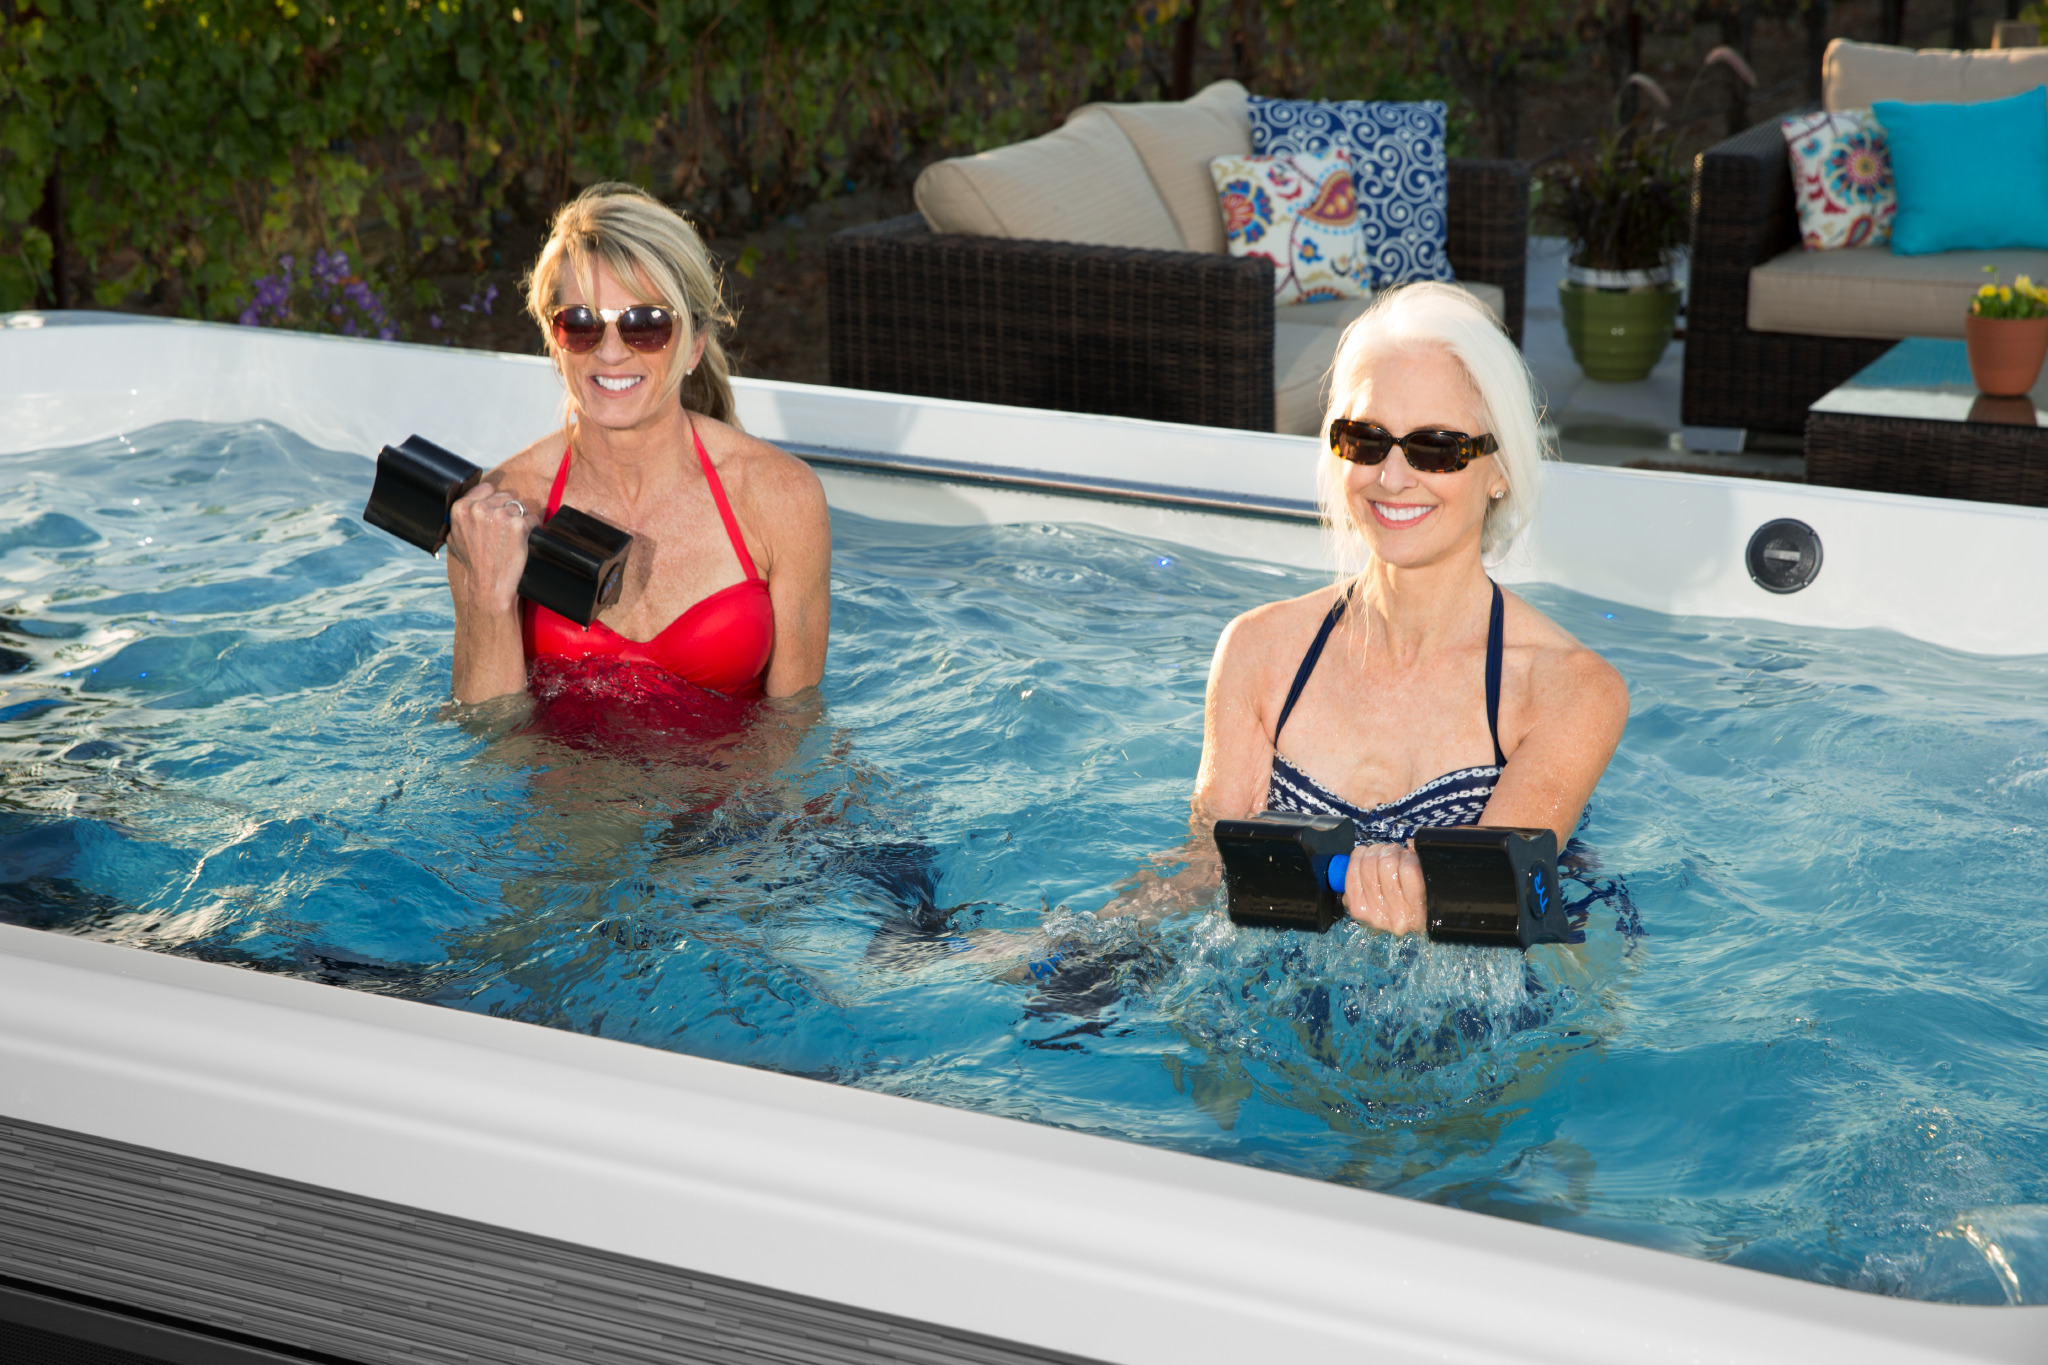 Ladies' Night at Home in a Swim Spa